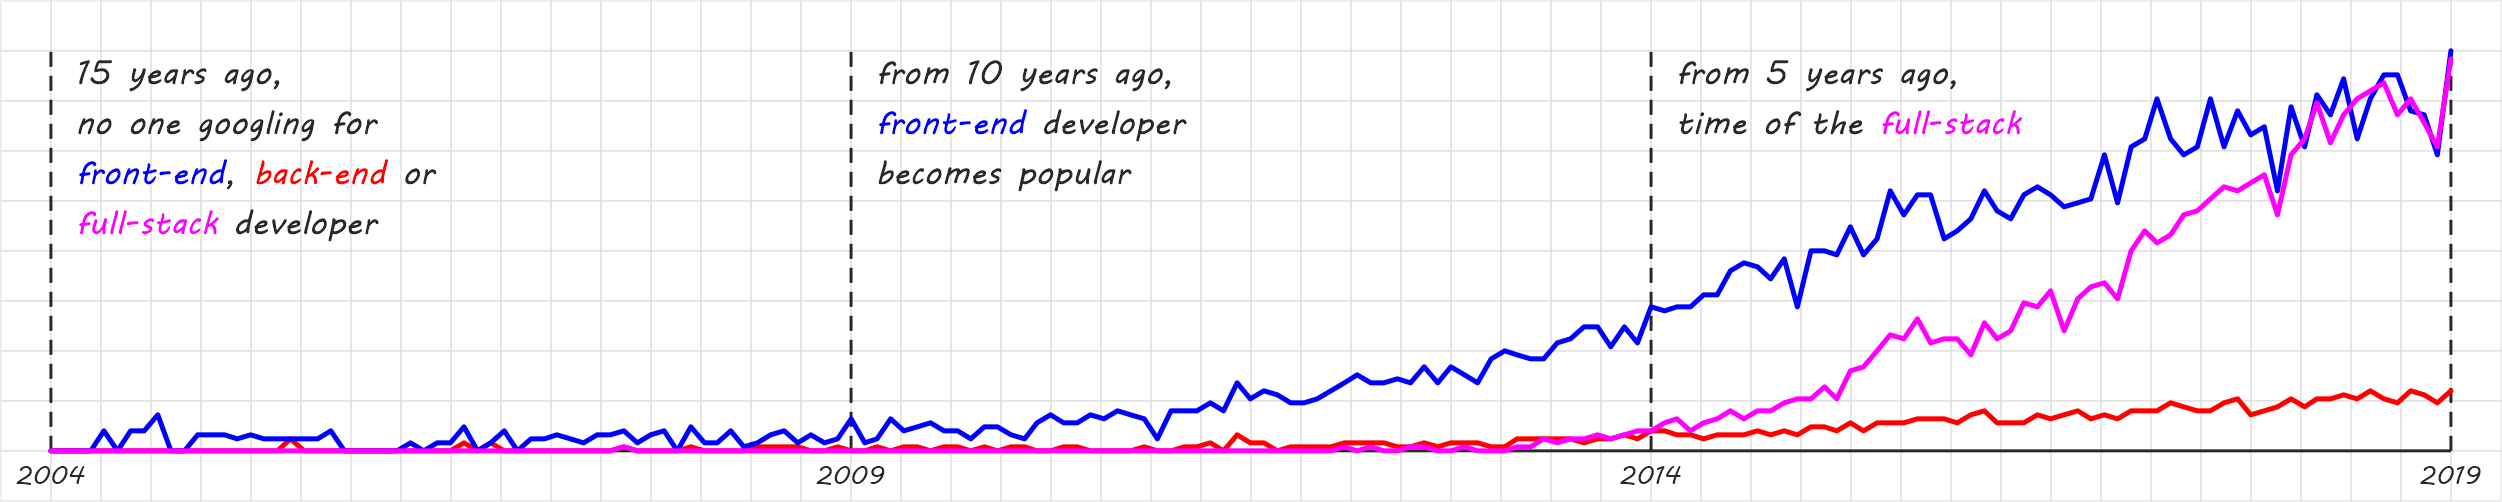 Google Trends chart for front-end, back-end, and full-stack developer terms from 2004 to 2019.